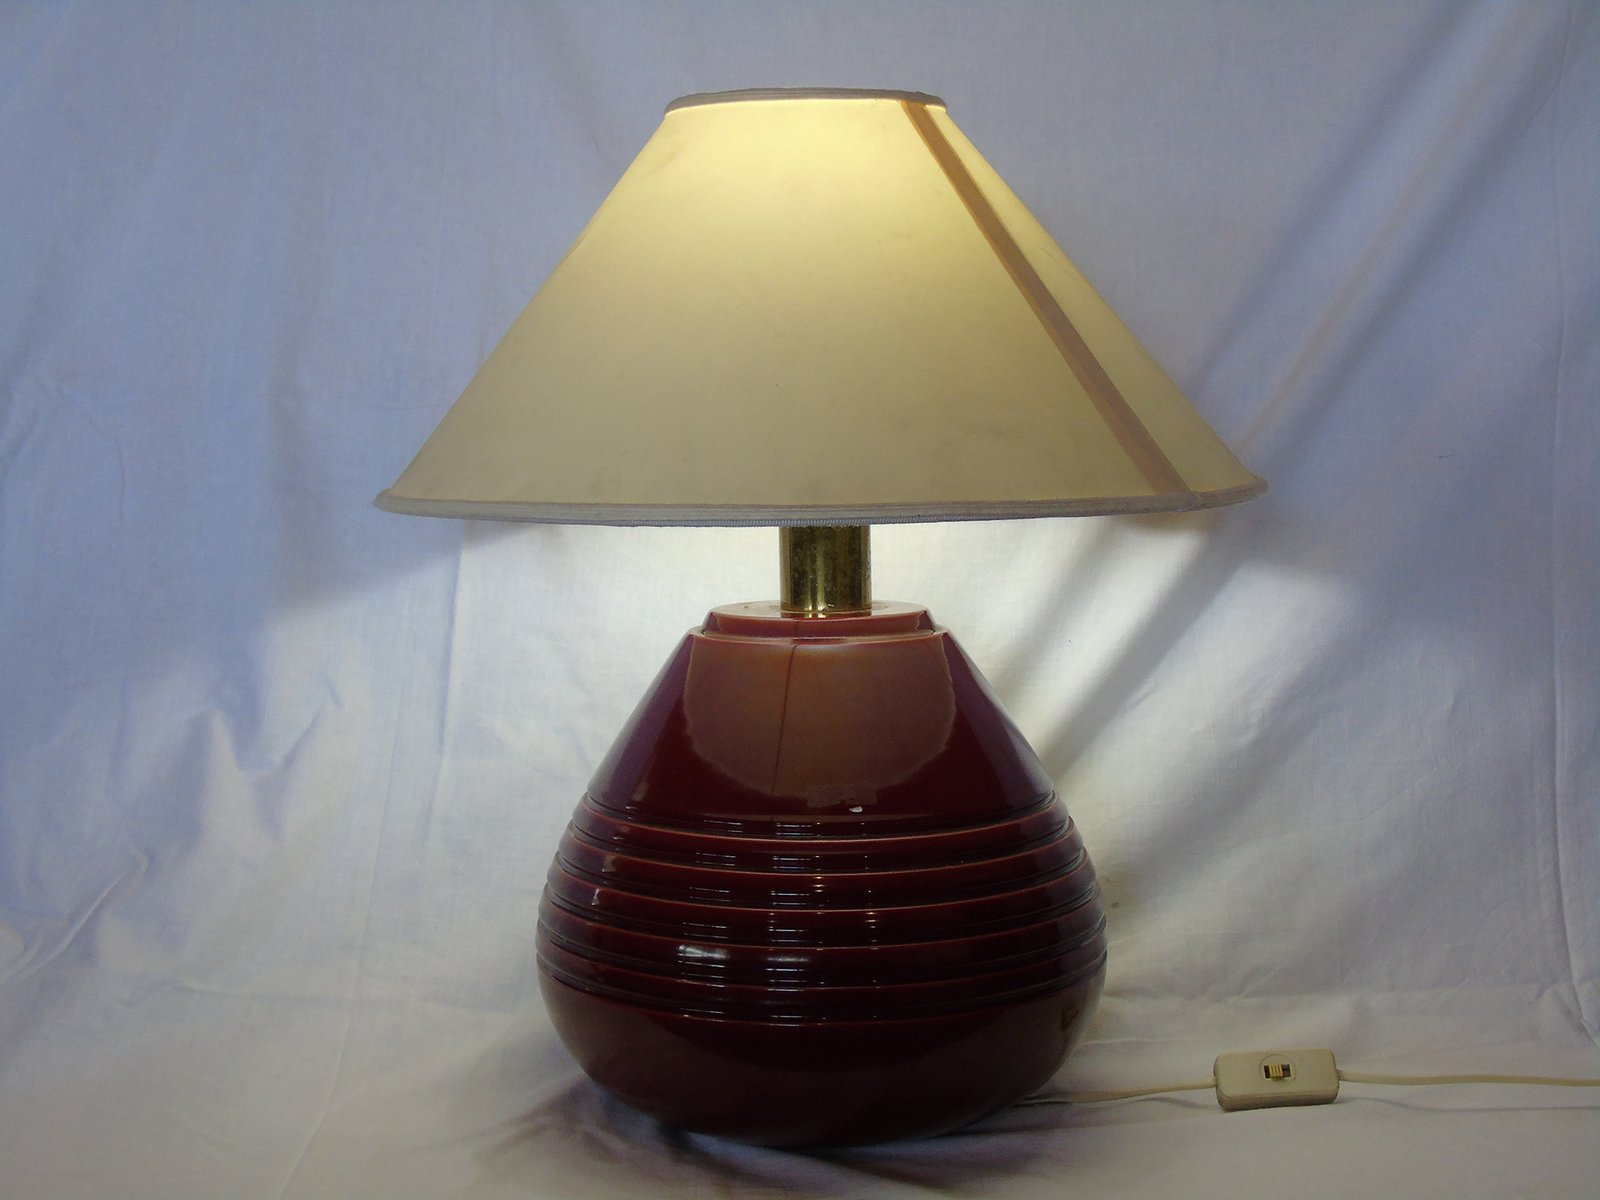 Vintage Red Ceramic Table Lamp, 1960s